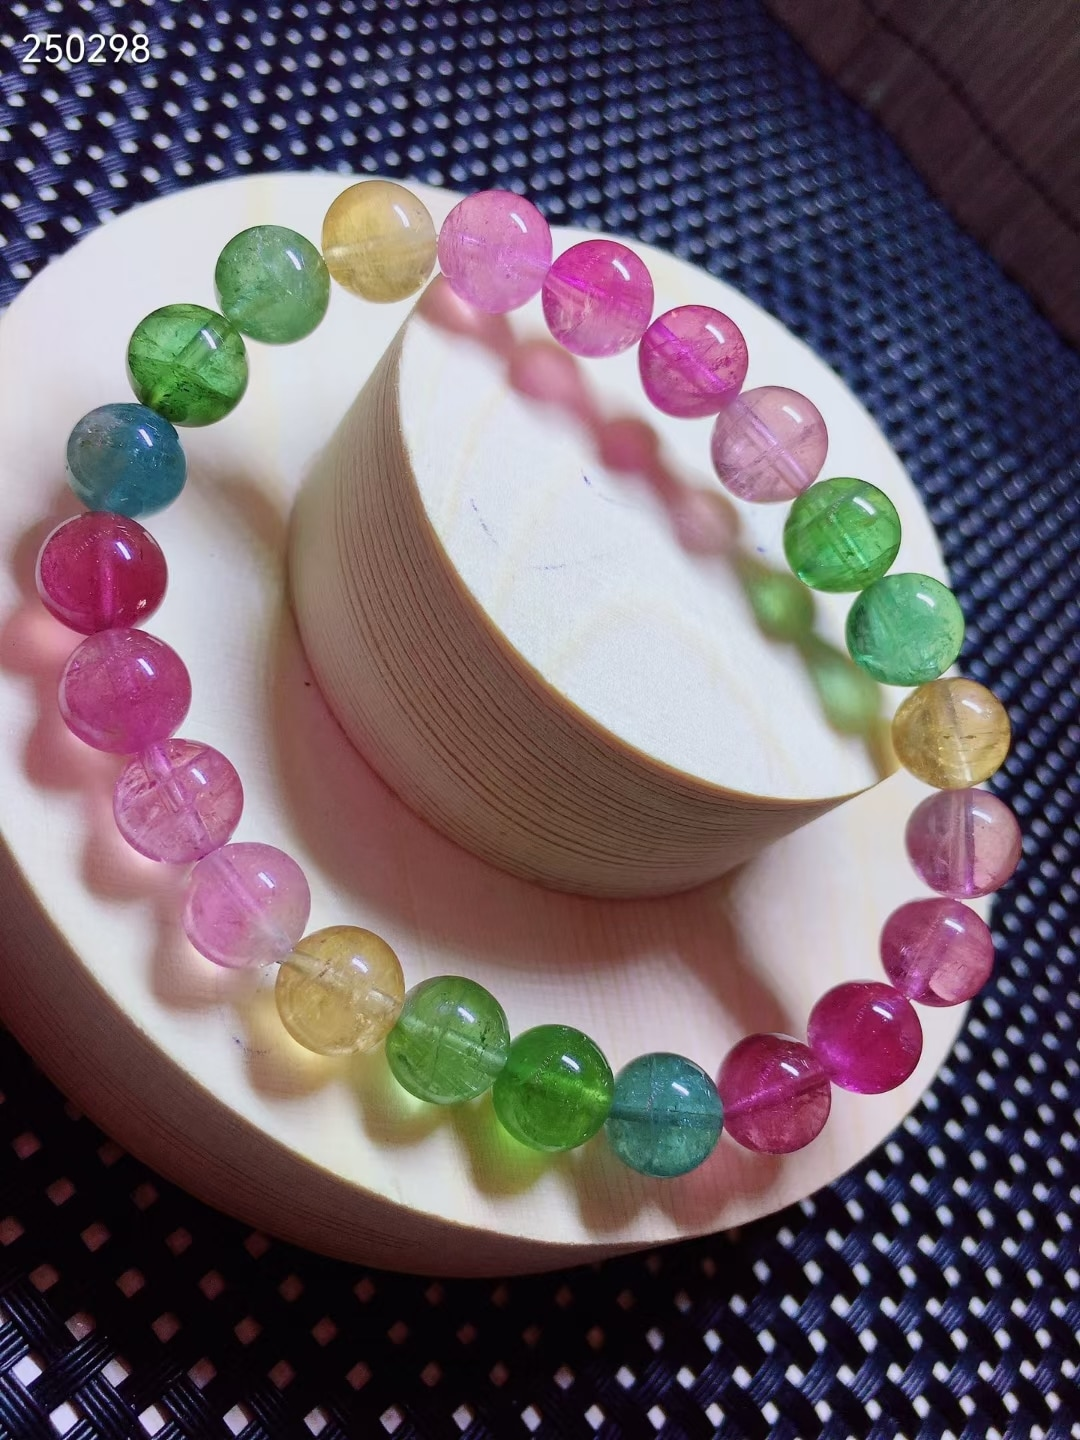 8mm Natural Colorful Tourmaline Crystal Bracelet Clear Round Beads Women Crystal Jewelry Candy Tourmaline AAAAAAA